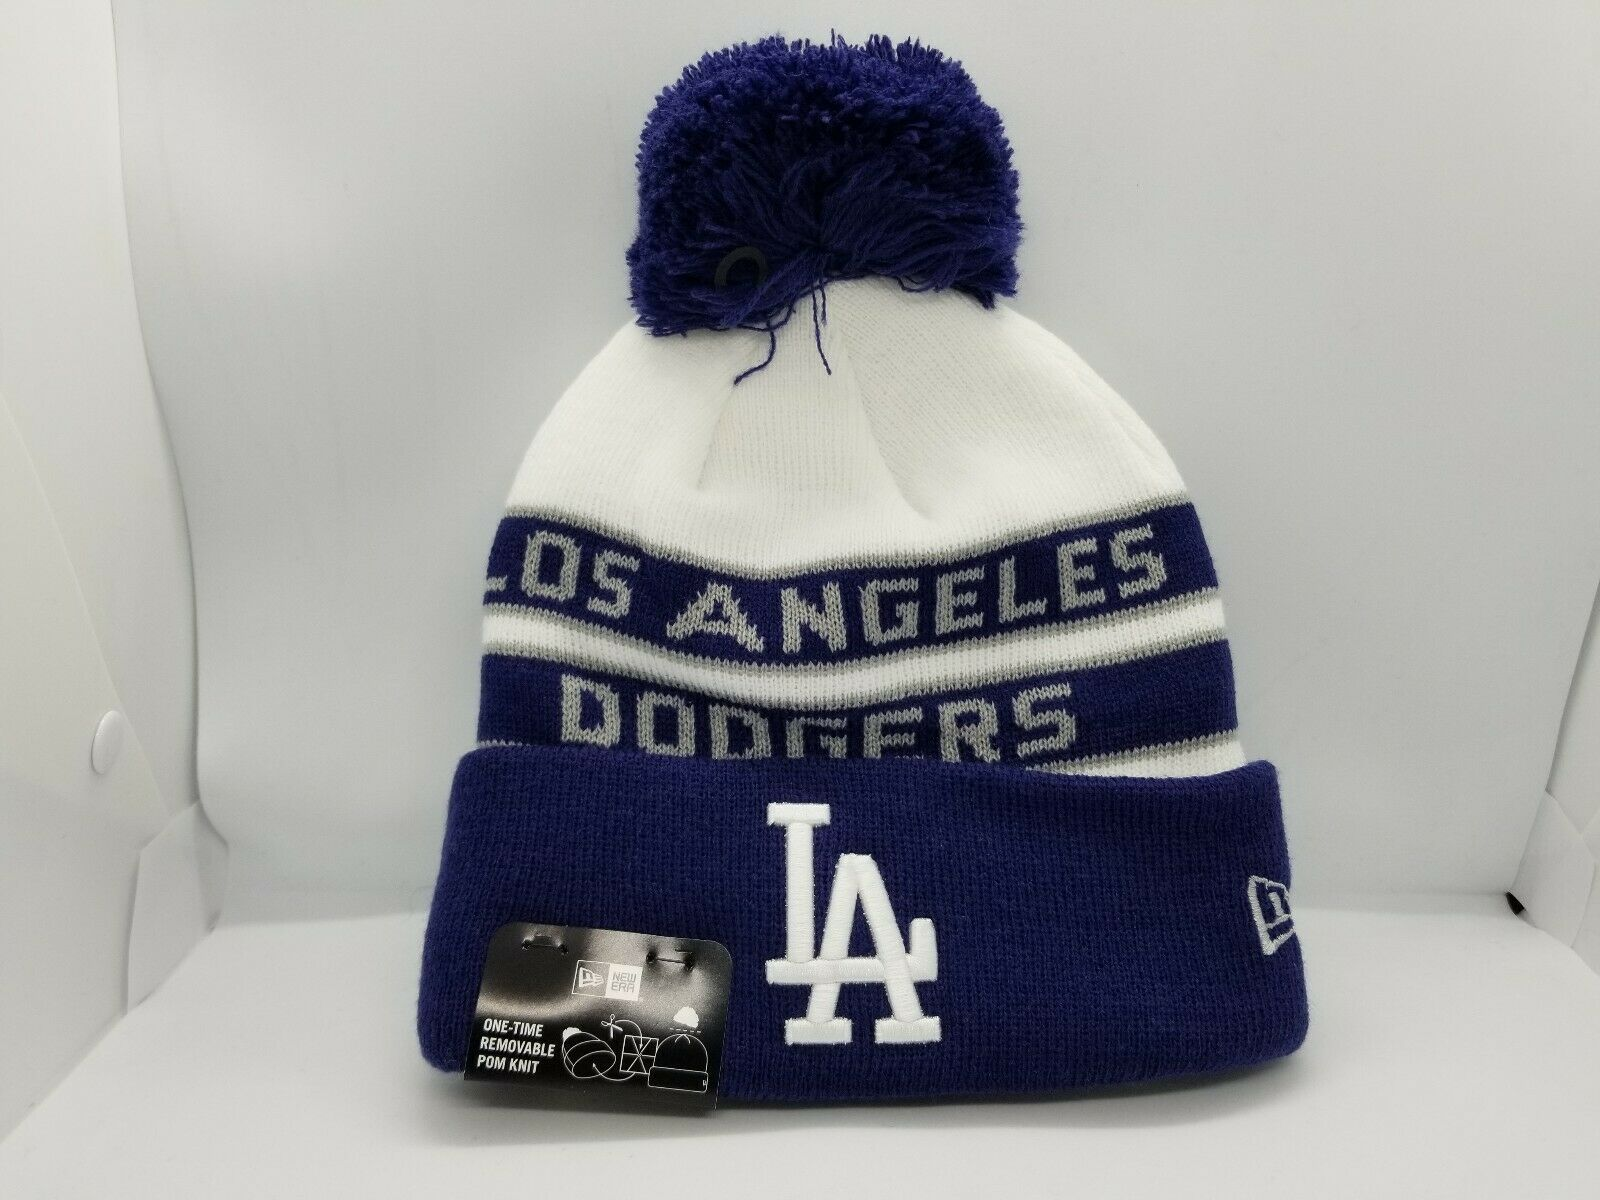 White-blue Dodgers beanie with full gray Los Angeles Dodgers text